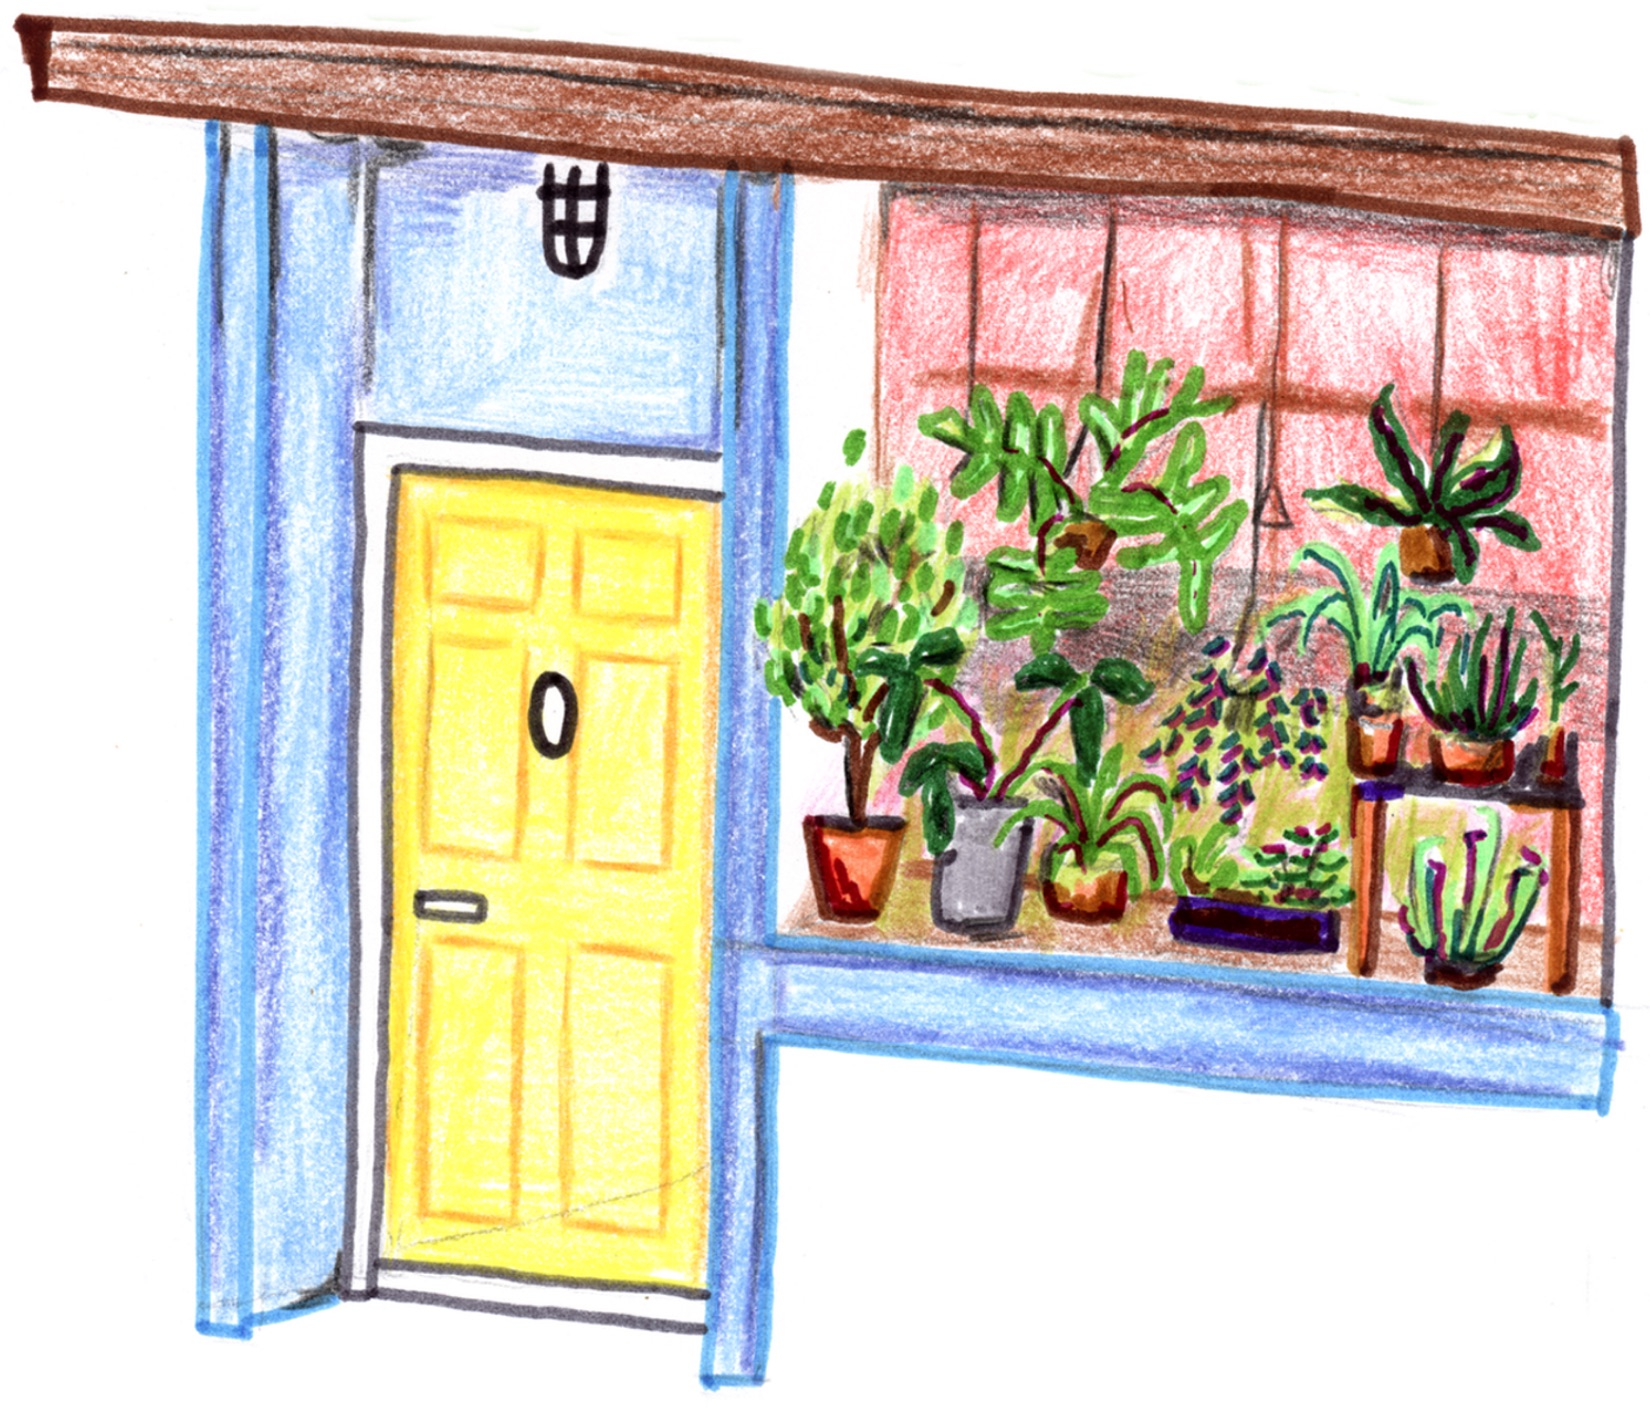 Drawing of the front of Dorsa Brevia: a recessed door next to a large window with plants.